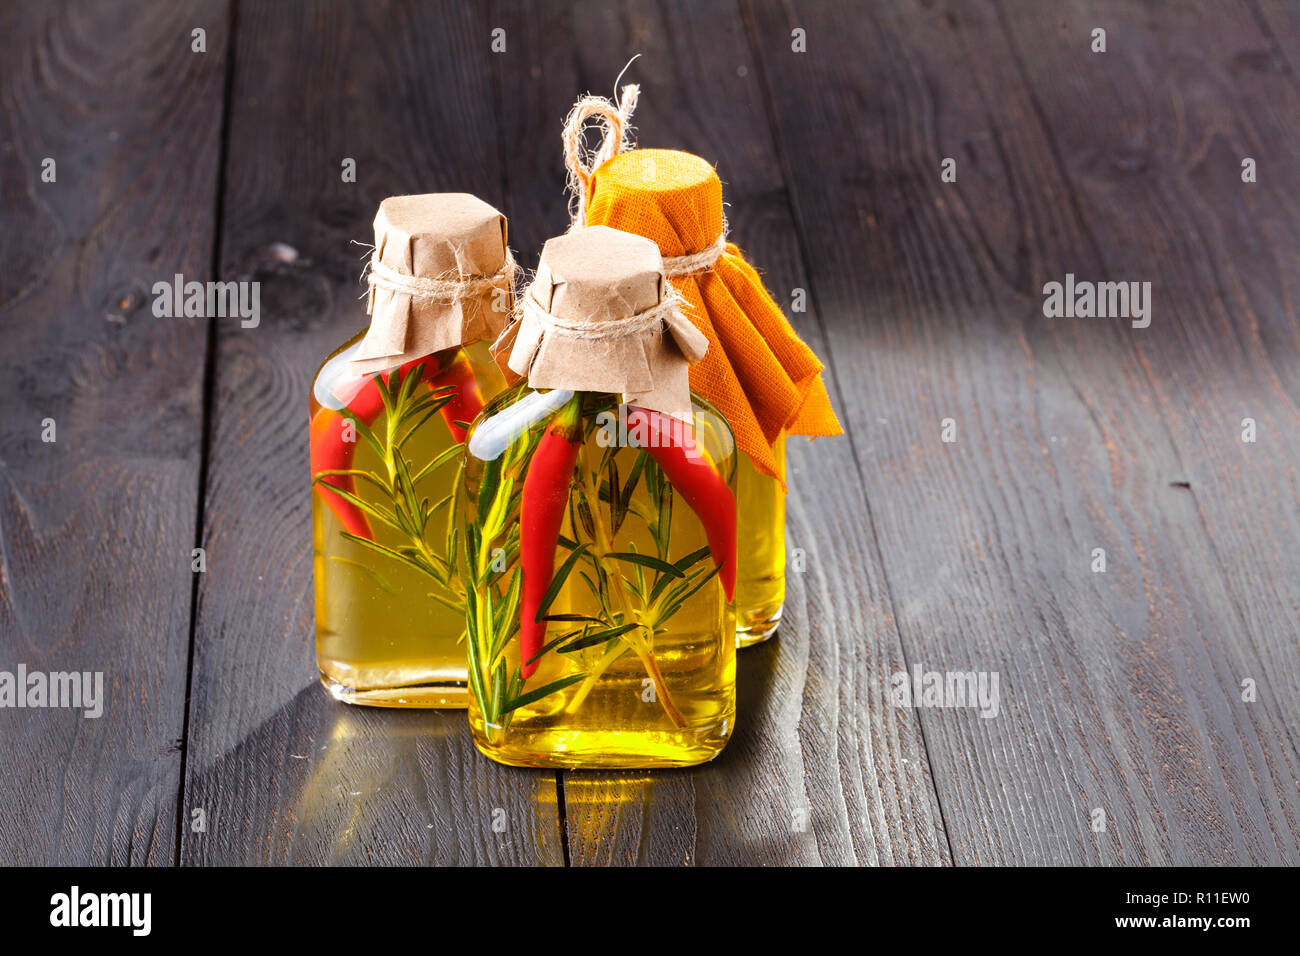 Oil Bottles with Aromatic Herbs Stock Photo